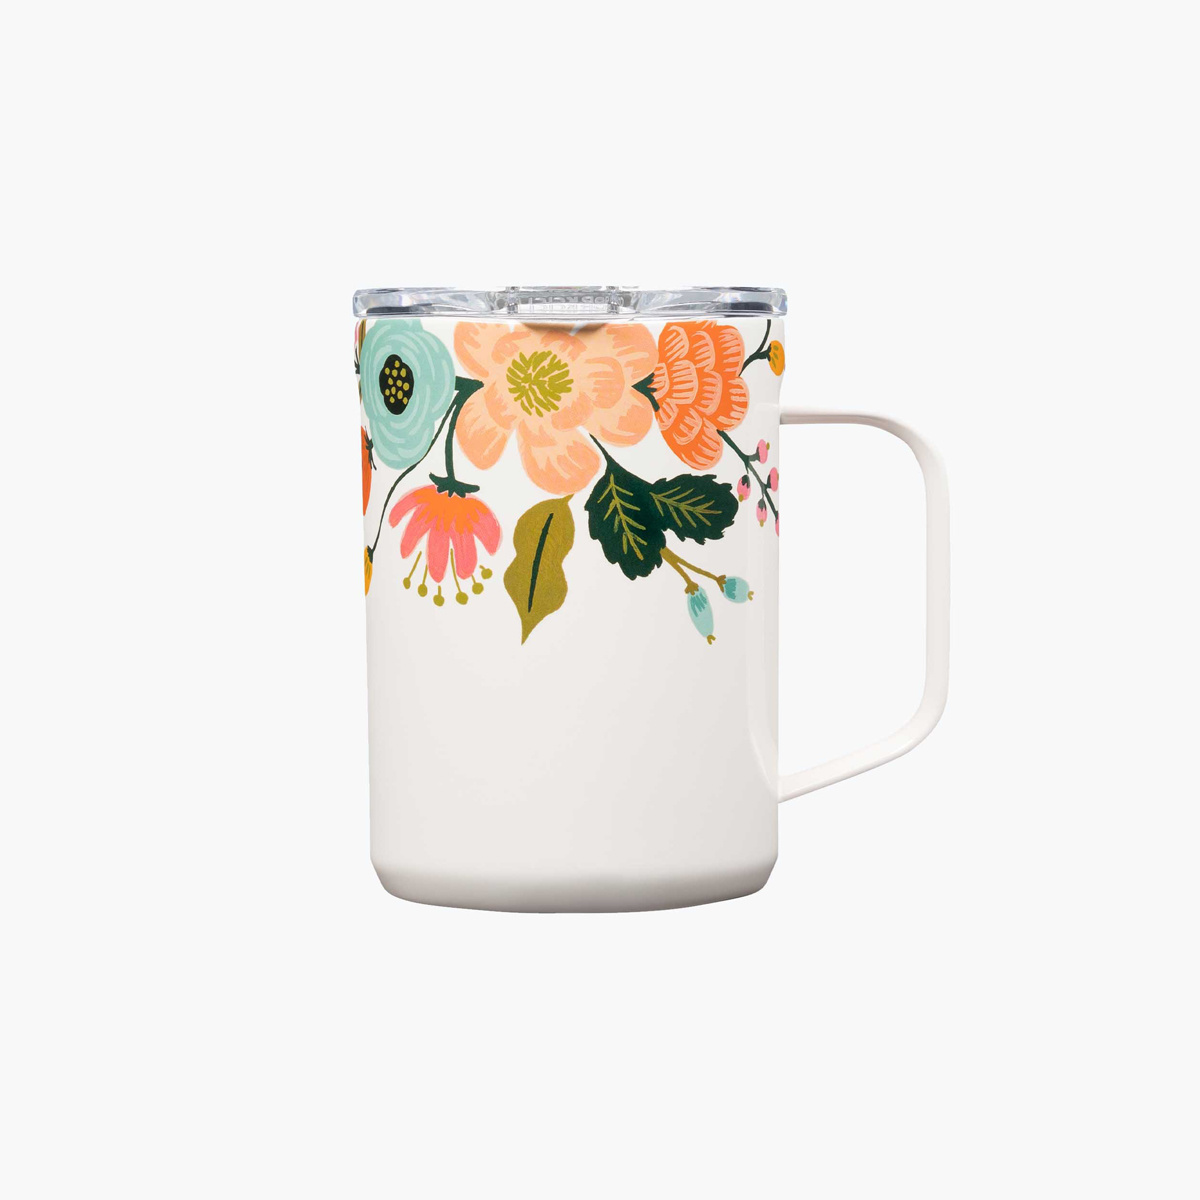 Corkcicle - CO Corkcicle x Rifle Paper Co - Cream Lively Floral Mug